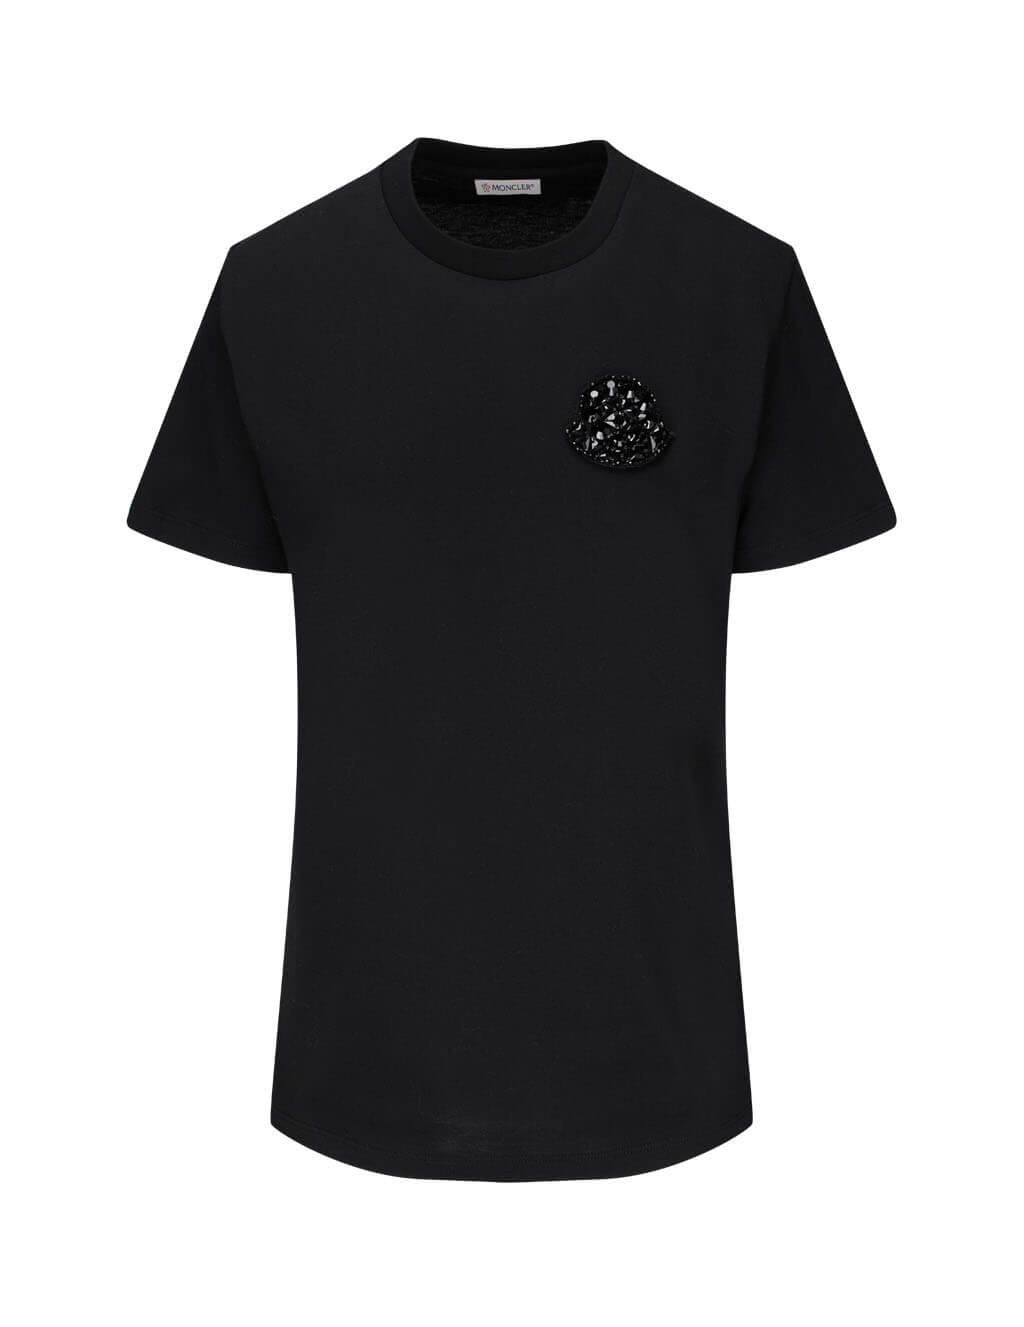 Women's Moncler Sequin Logo T-Shirt in Black. 0938C77700V8058999